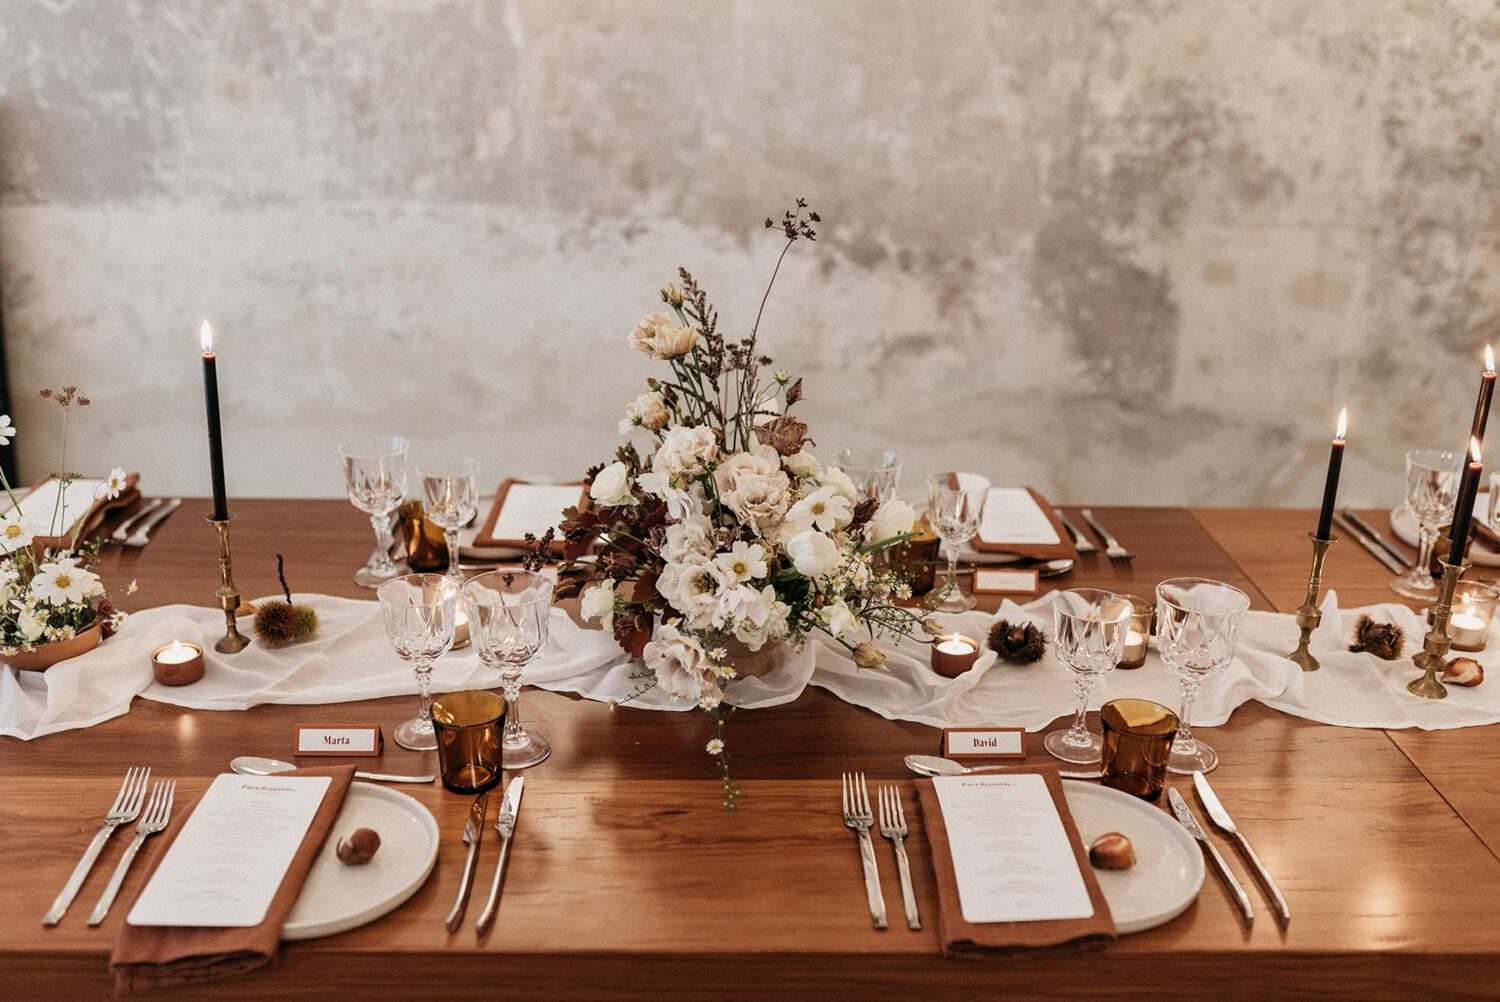 Detail of the styling, decoration and exquisite floral arrangements of the meal table at the launch event of Brava, such as a small and intimate wedding.